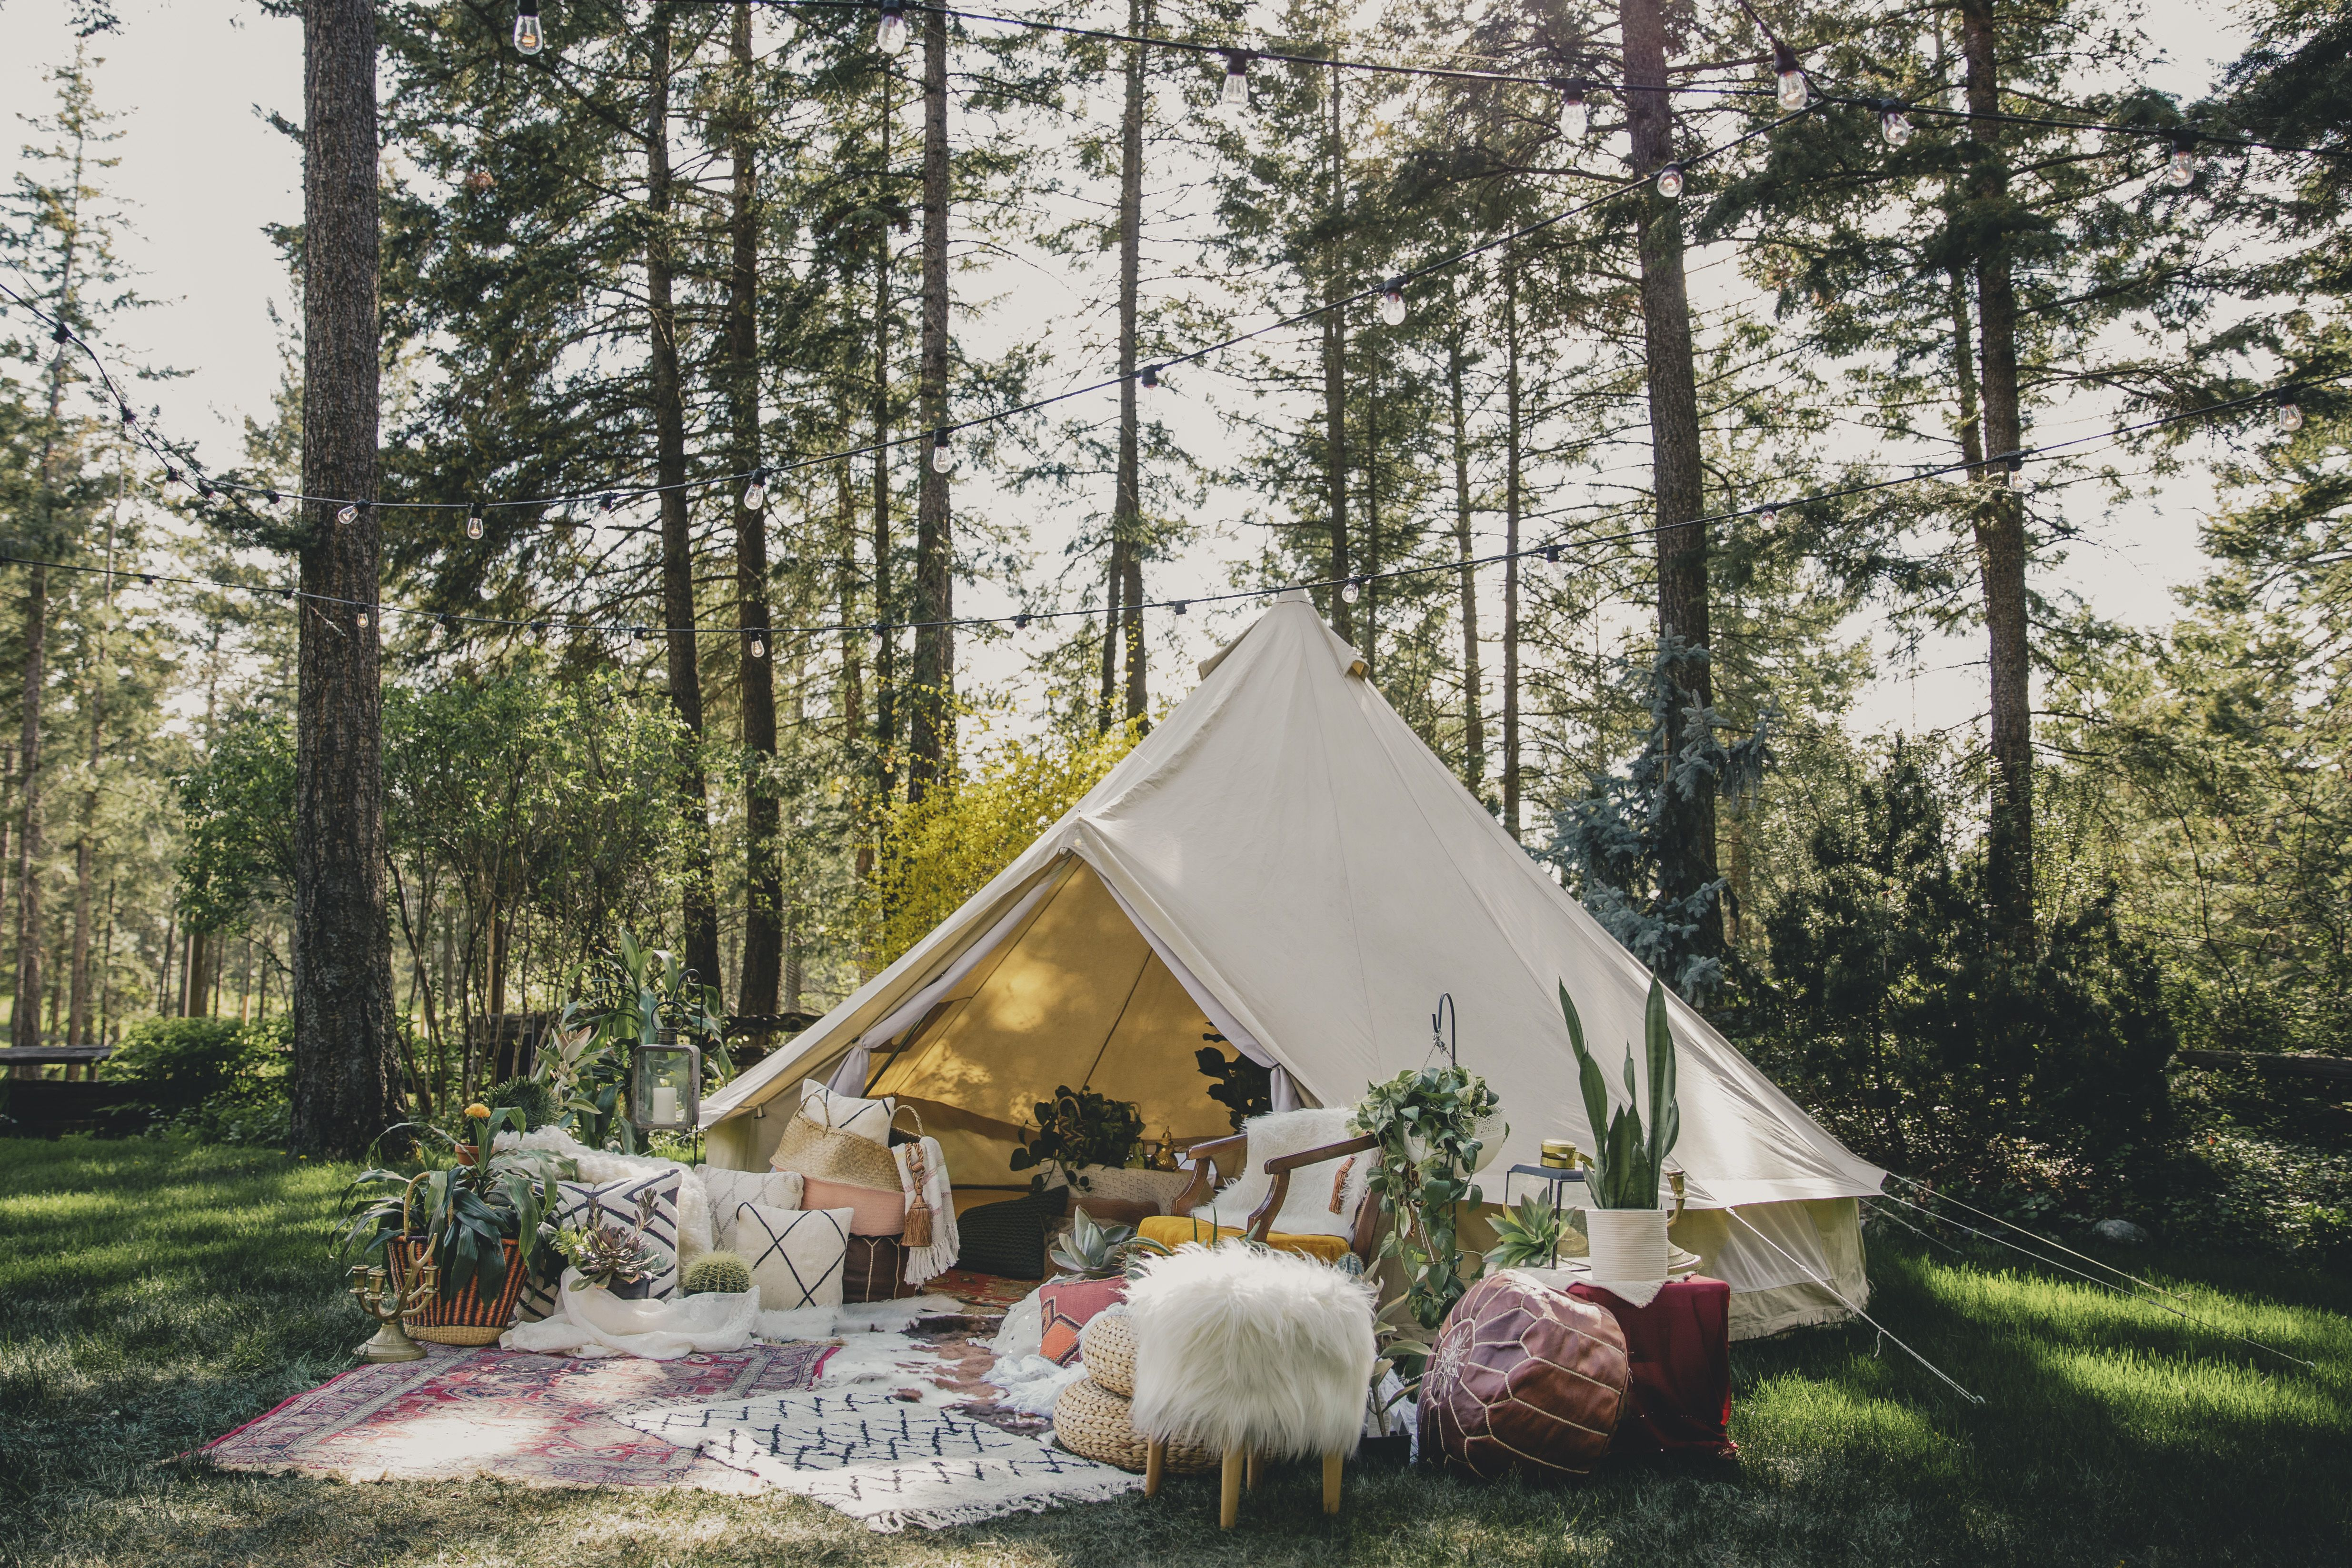 Photo by Lee Watkins. Tent by Luxe C&. Shoot styled by Courtney Ungaro. Clothing by Man Woman Home. Location Caldwell Heritage Farm Kelowna BC. & Photo by Lee Watkins. Tent by Luxe Camp. Shoot styled by Courtney ...